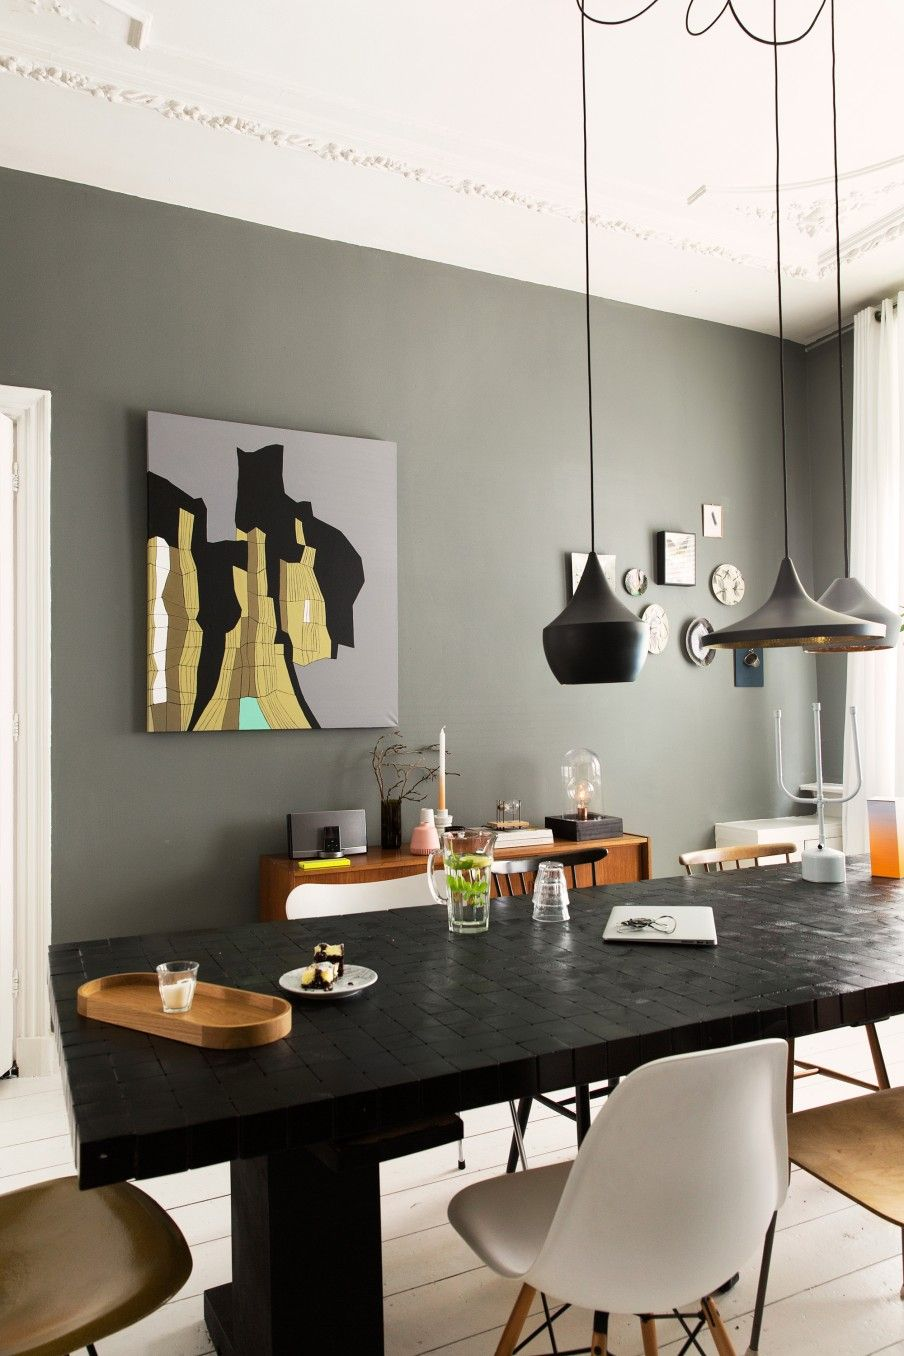 mur kaki a la haye d co inspirations pinterest couleurs mur et manger. Black Bedroom Furniture Sets. Home Design Ideas